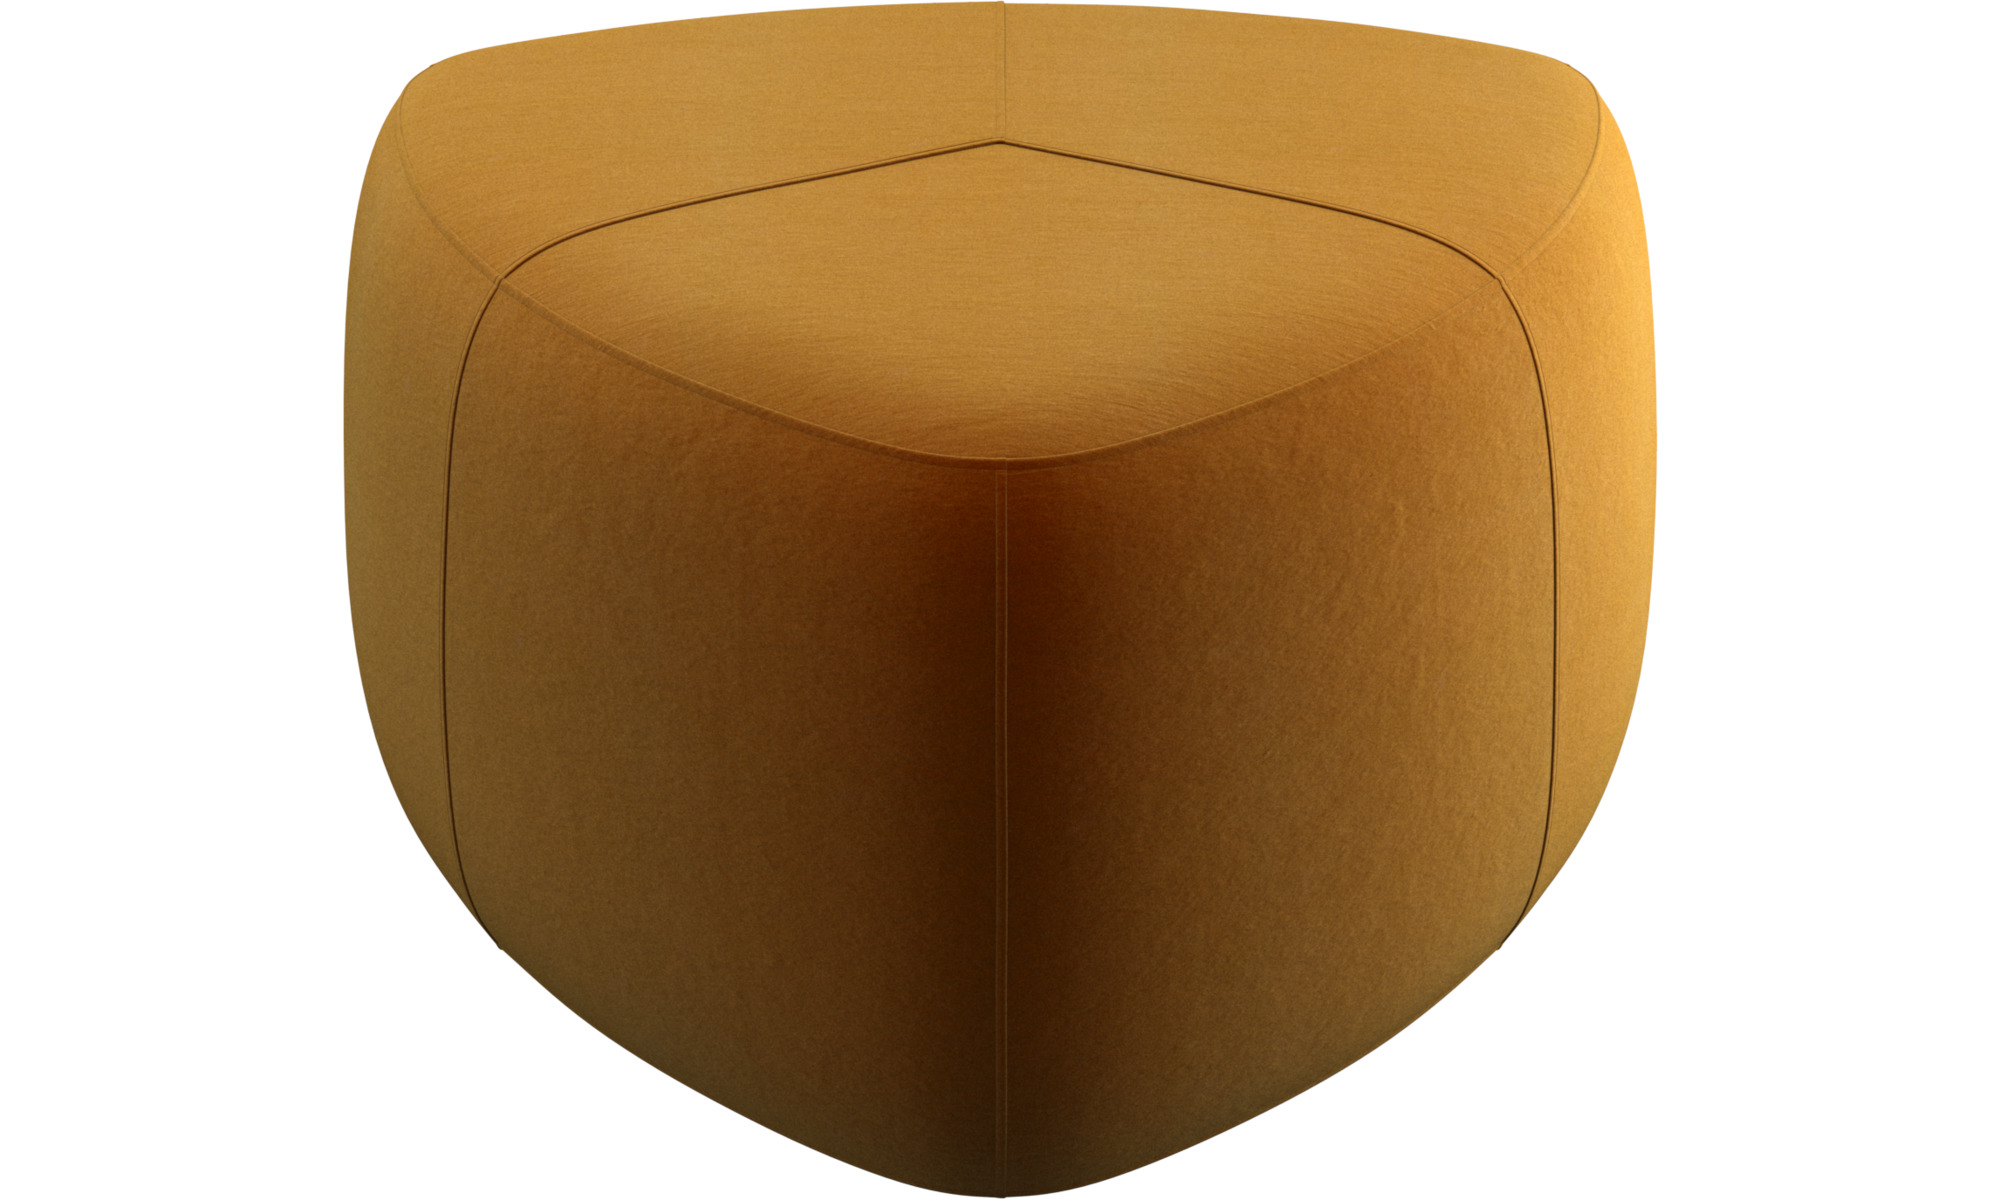 Sofa Hocker - Bermuda Hocker - Gelb - Stoff